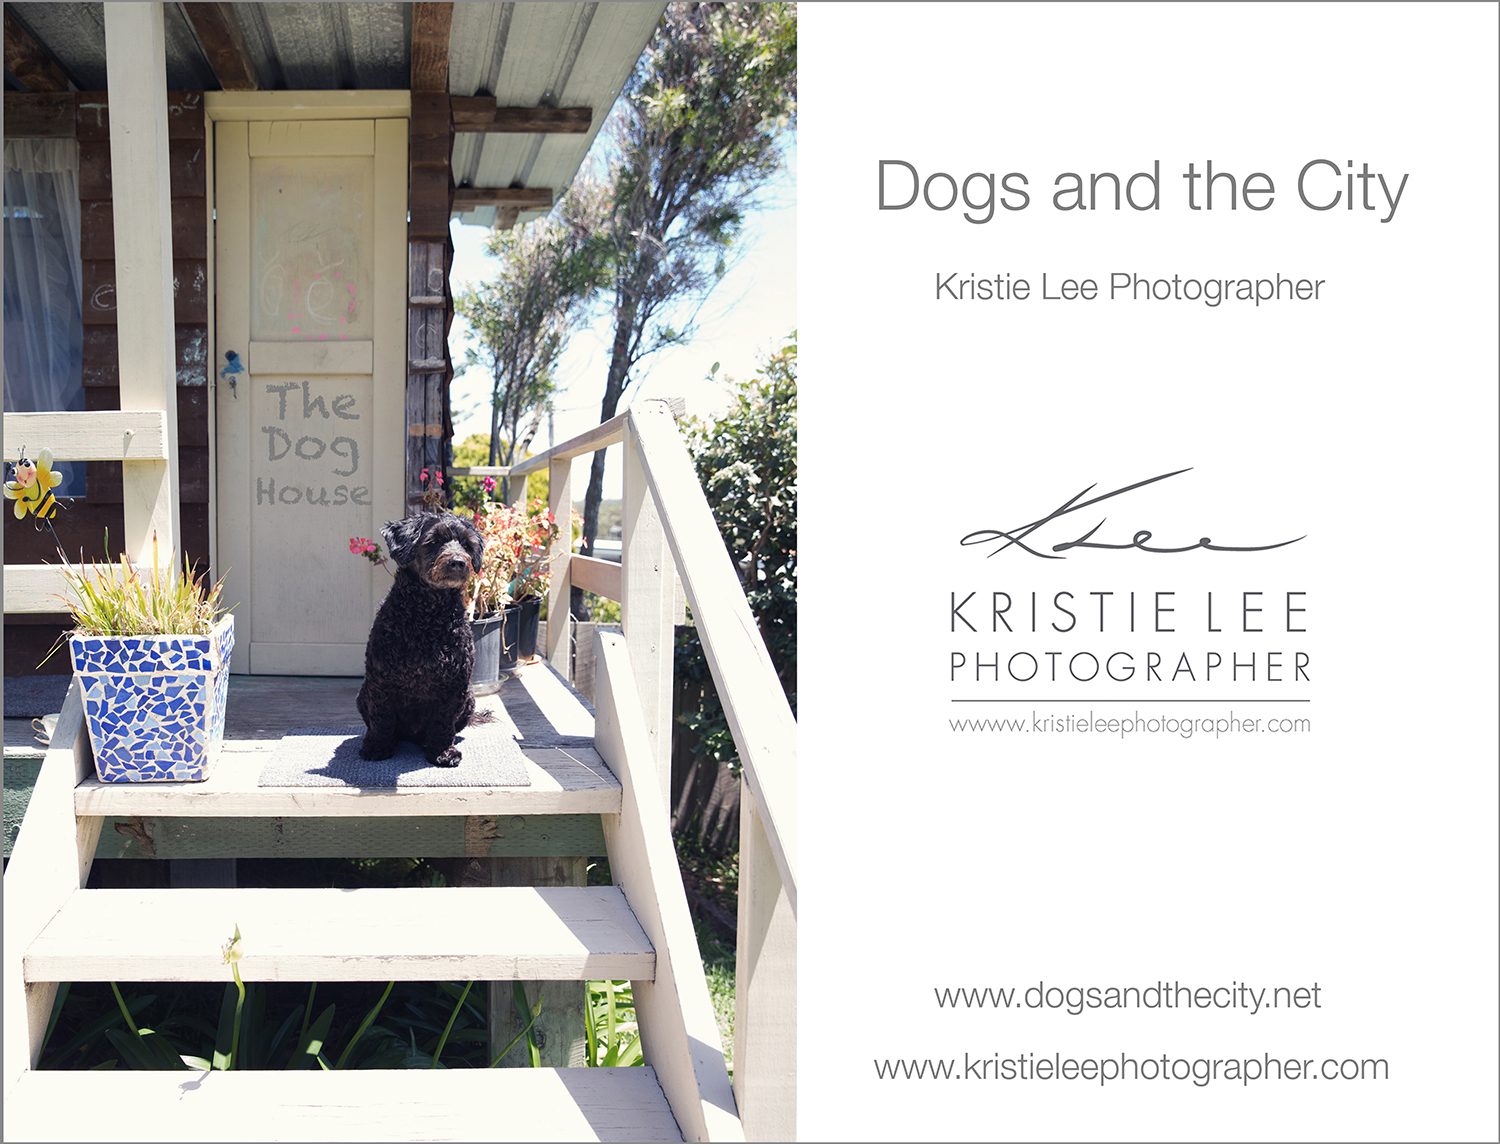 mako dogs_and_the_city kristie_lee_photographer